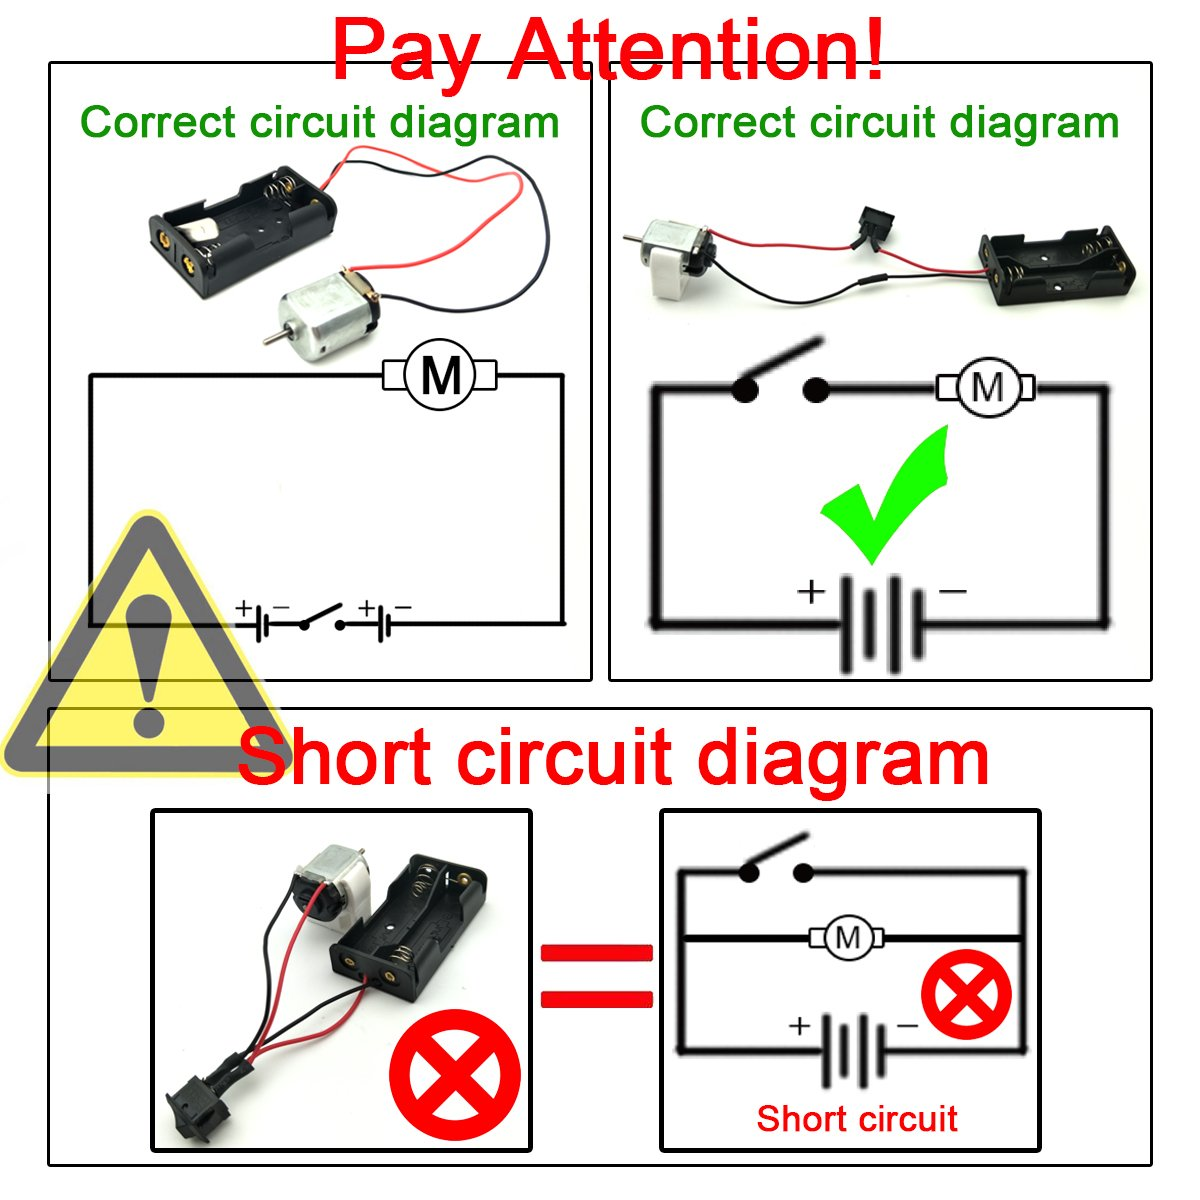 Eudax 6 Set Small Dc Motor Mini Electric Hobby Motors 15v 3v Short Circuit Electronics 15000rpm With 2x15v Aa Battery Holder Case Bracket Rocker Switch And 12pcs 25cm Electronic Wire For Diy Toys